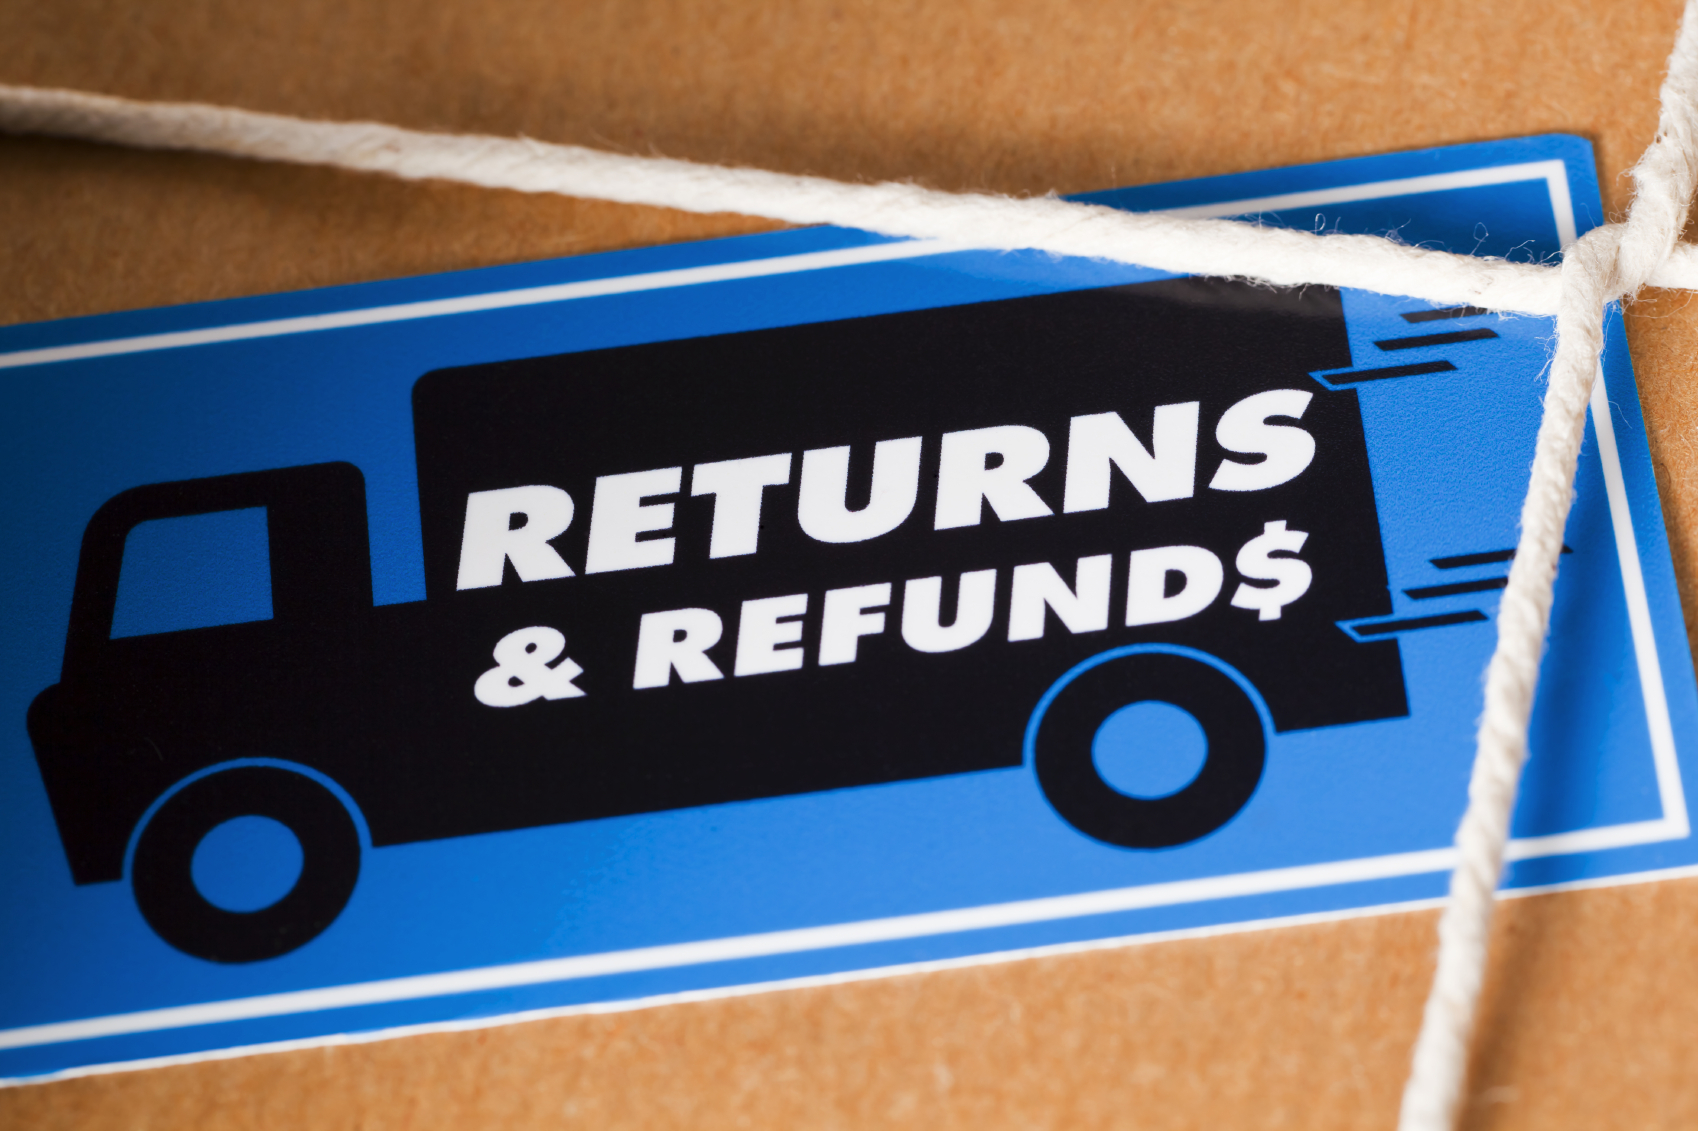 f1f369fa7d4d2e How to Deal with Product Returns in Retail - Vend Retail Blog